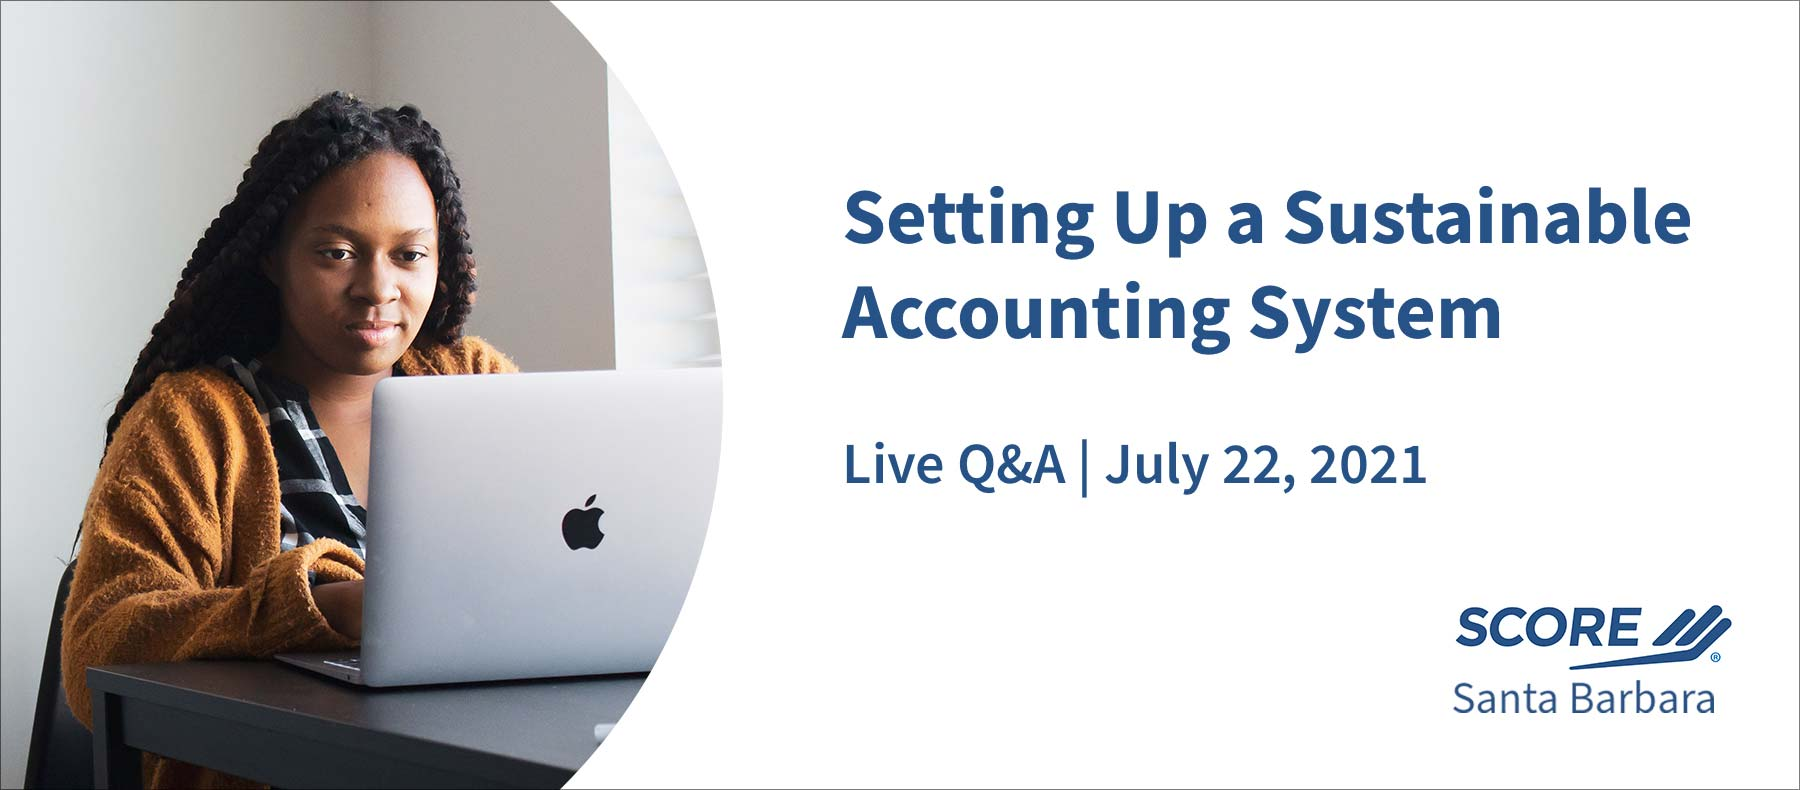 SCORE setting up accounting system session Q&A 2